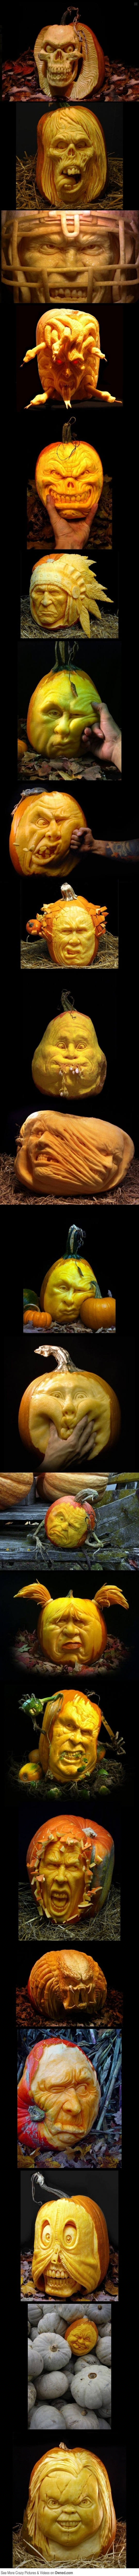 Epic pumkin carvings...these are too cool not to pass on! #halloween #pumpkin